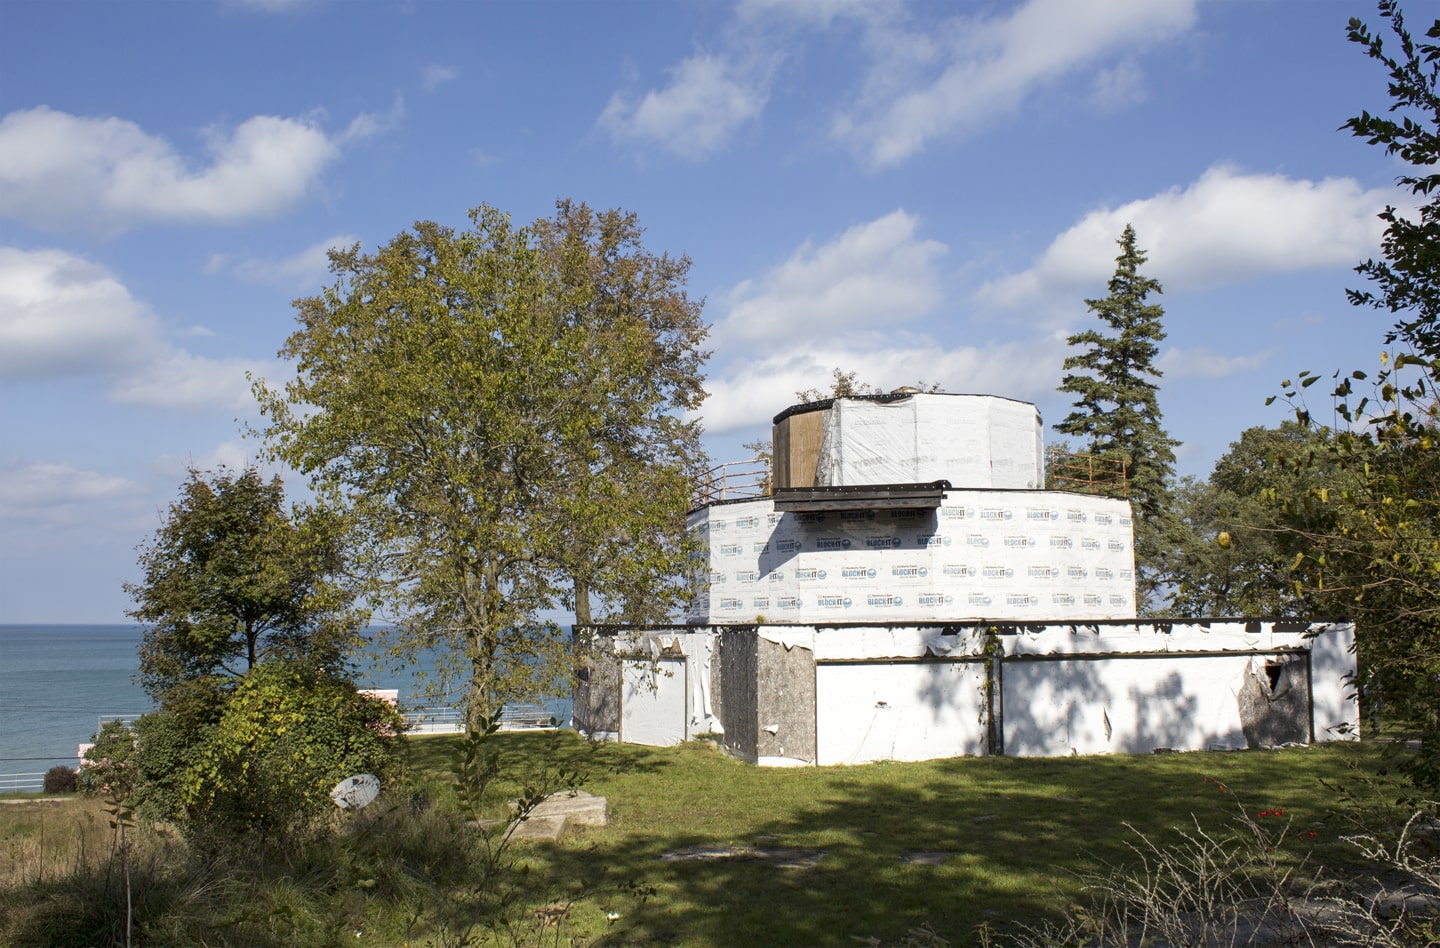 As it stands now, the House of Tomorrow is neglegted and in need of extensive repair. National Treasure distinction will help raise awareness of its architectural significance and ensure its future. Image courtesy of Indiana Landmarks.